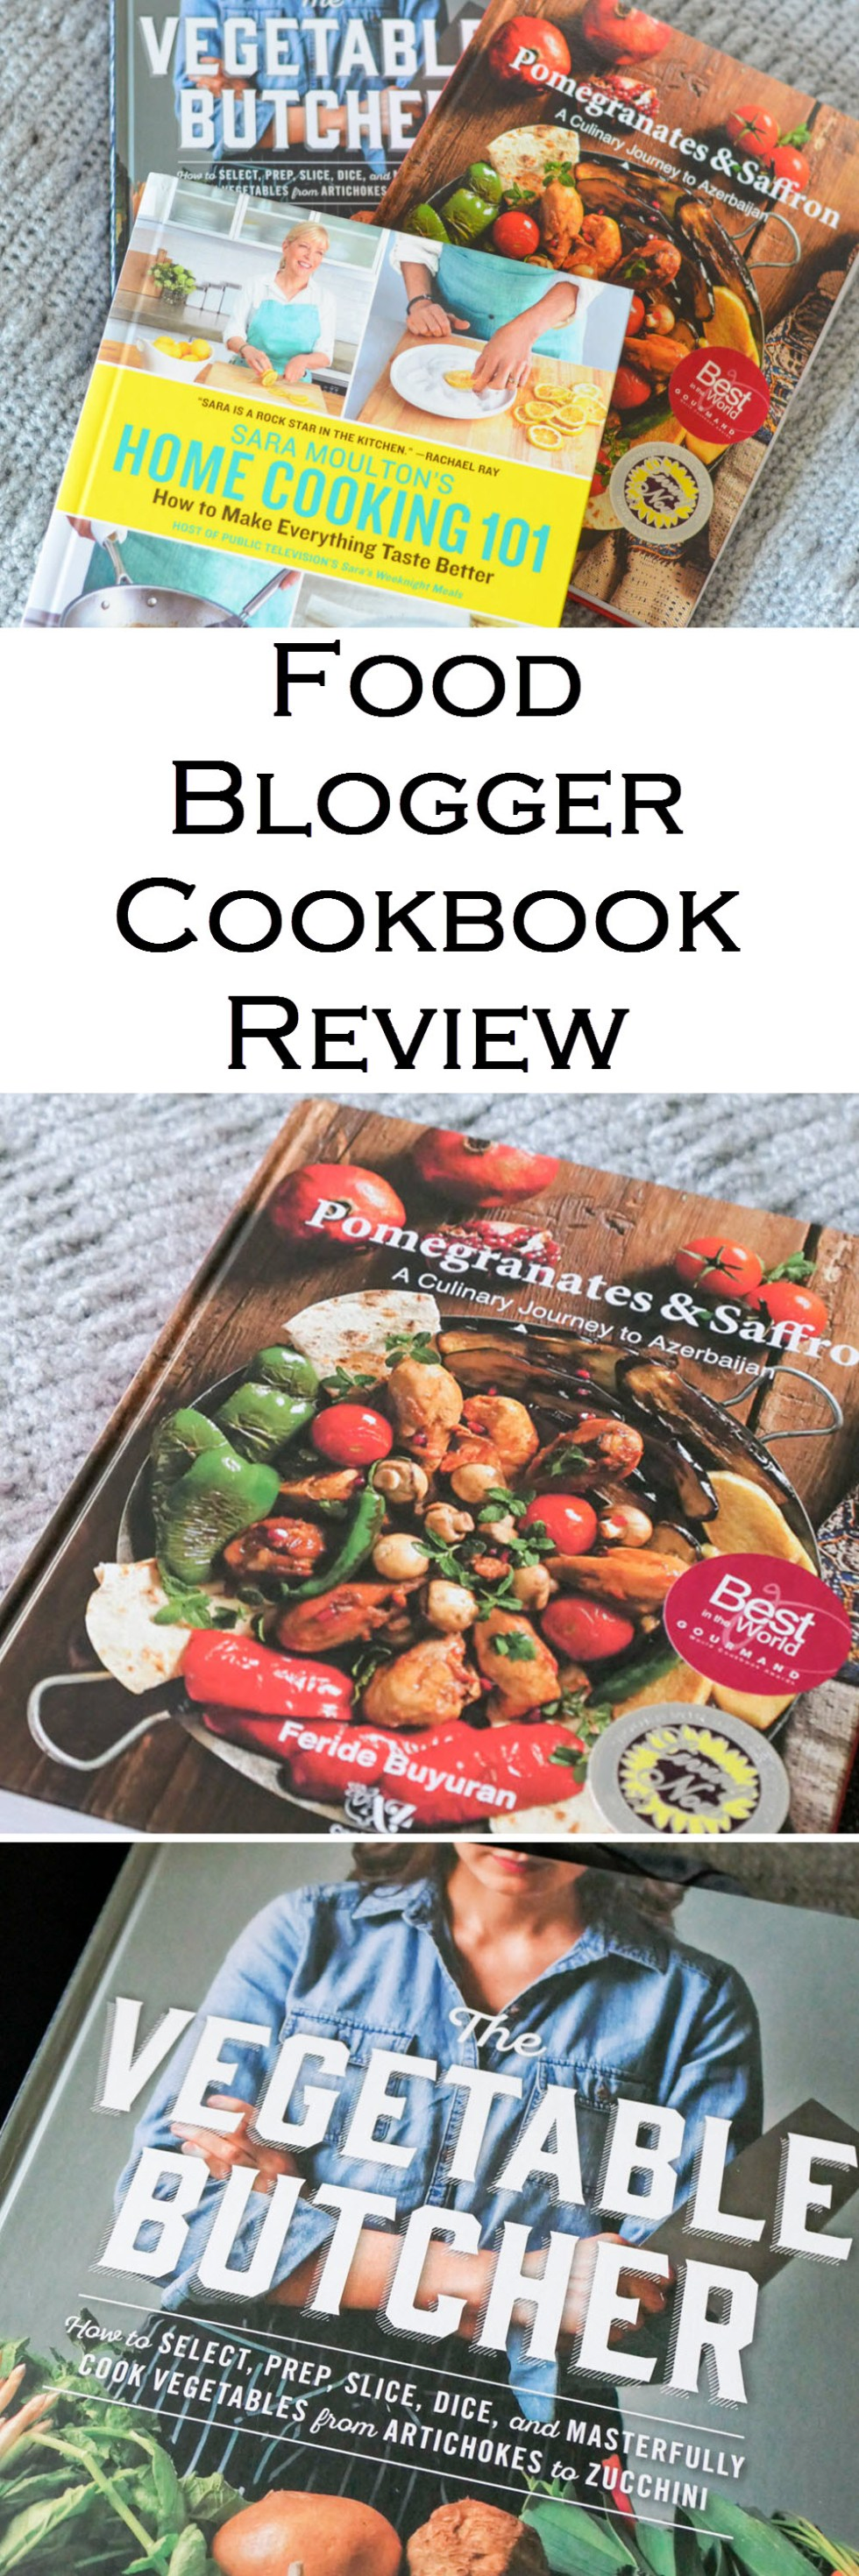 Food Blogger Cookbook Reviews - Sara Moulton, Cara Mangini, Feride Buyuran